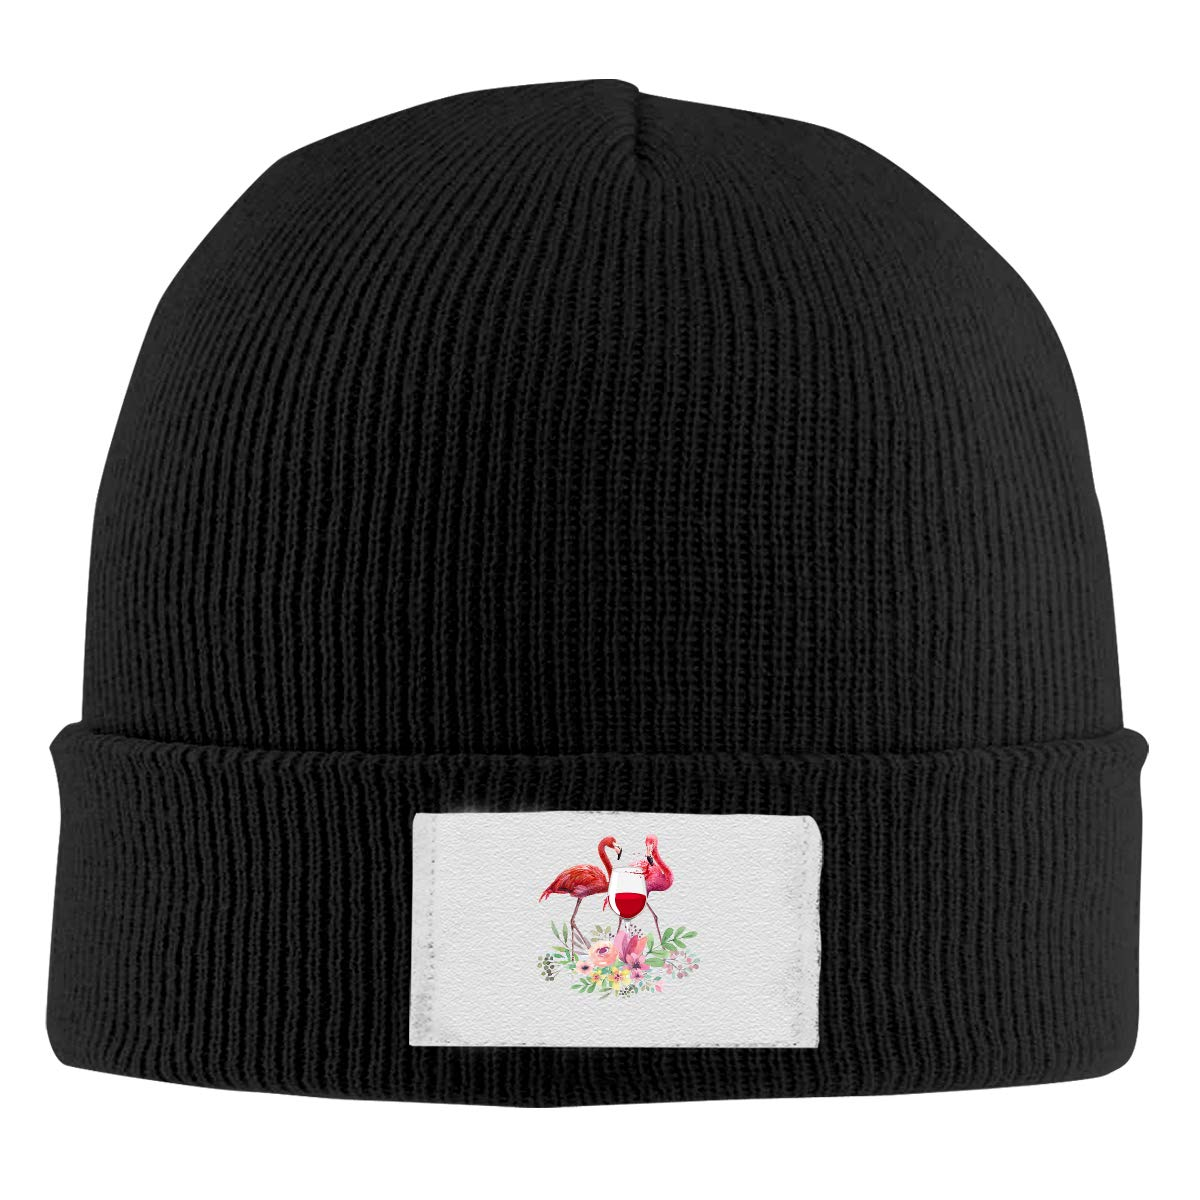 Skull Caps Floral Flamingo 1 Winter Warm Knit Hats Stretchy Cuff Beanie Hat Black